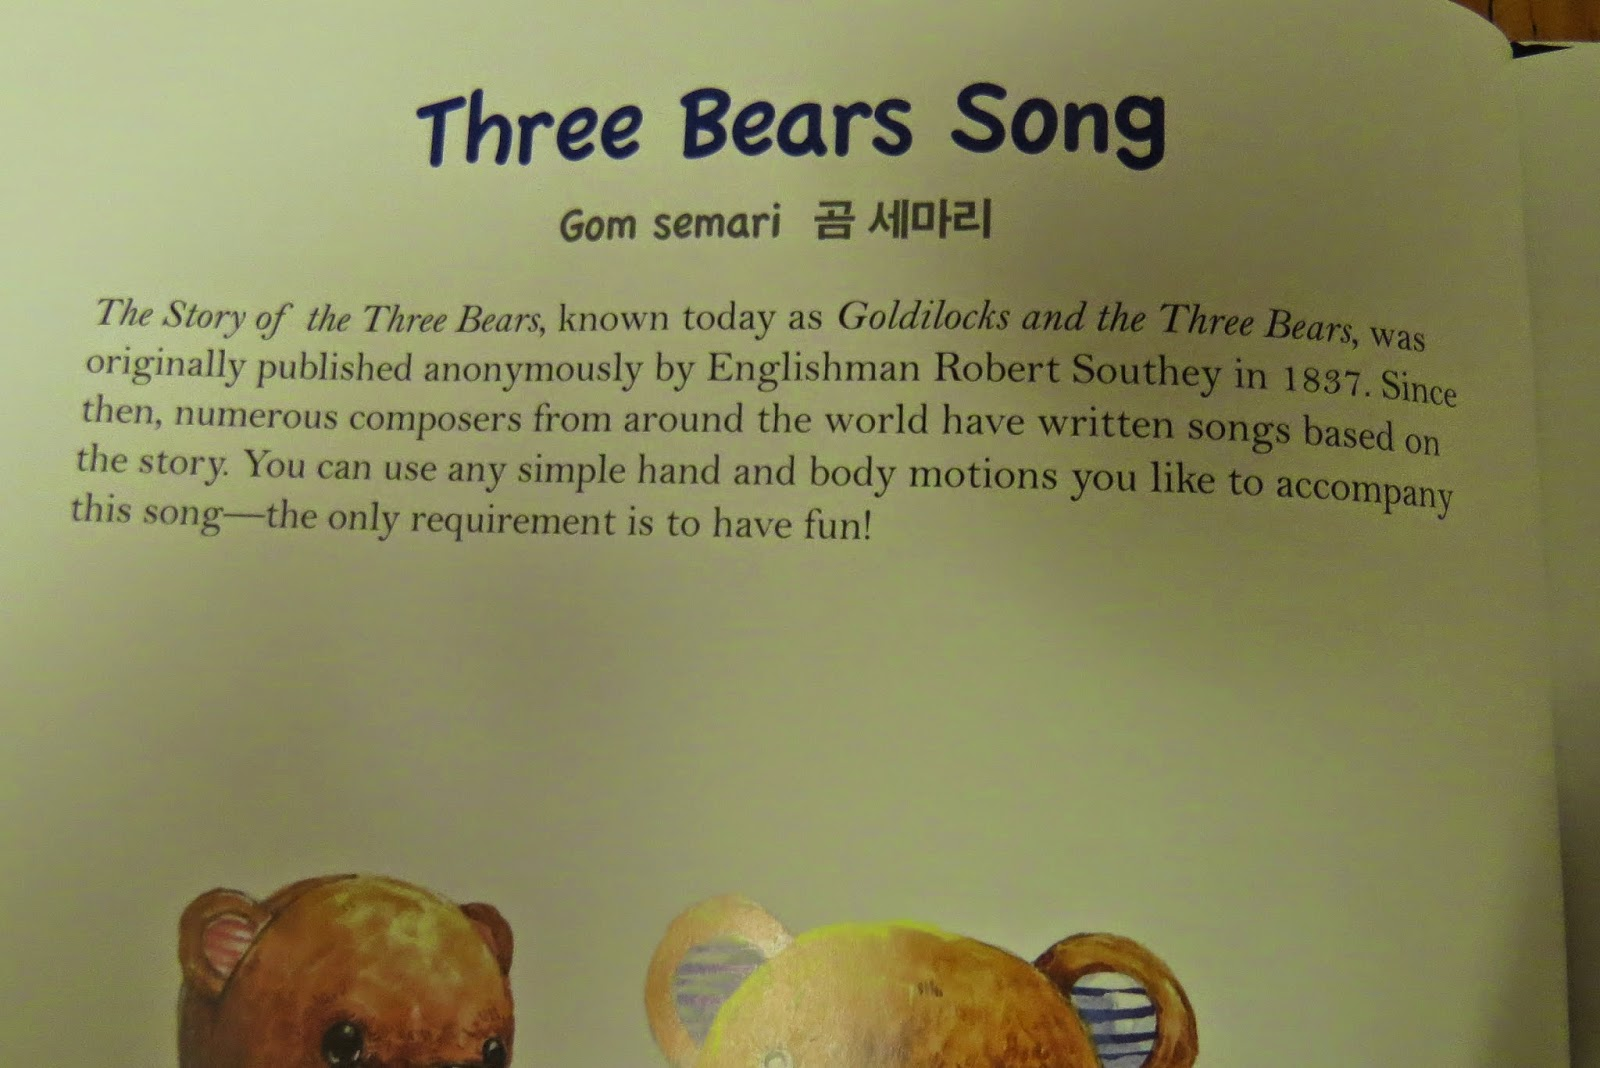 Goldilocks and the Three Bears Lyrics